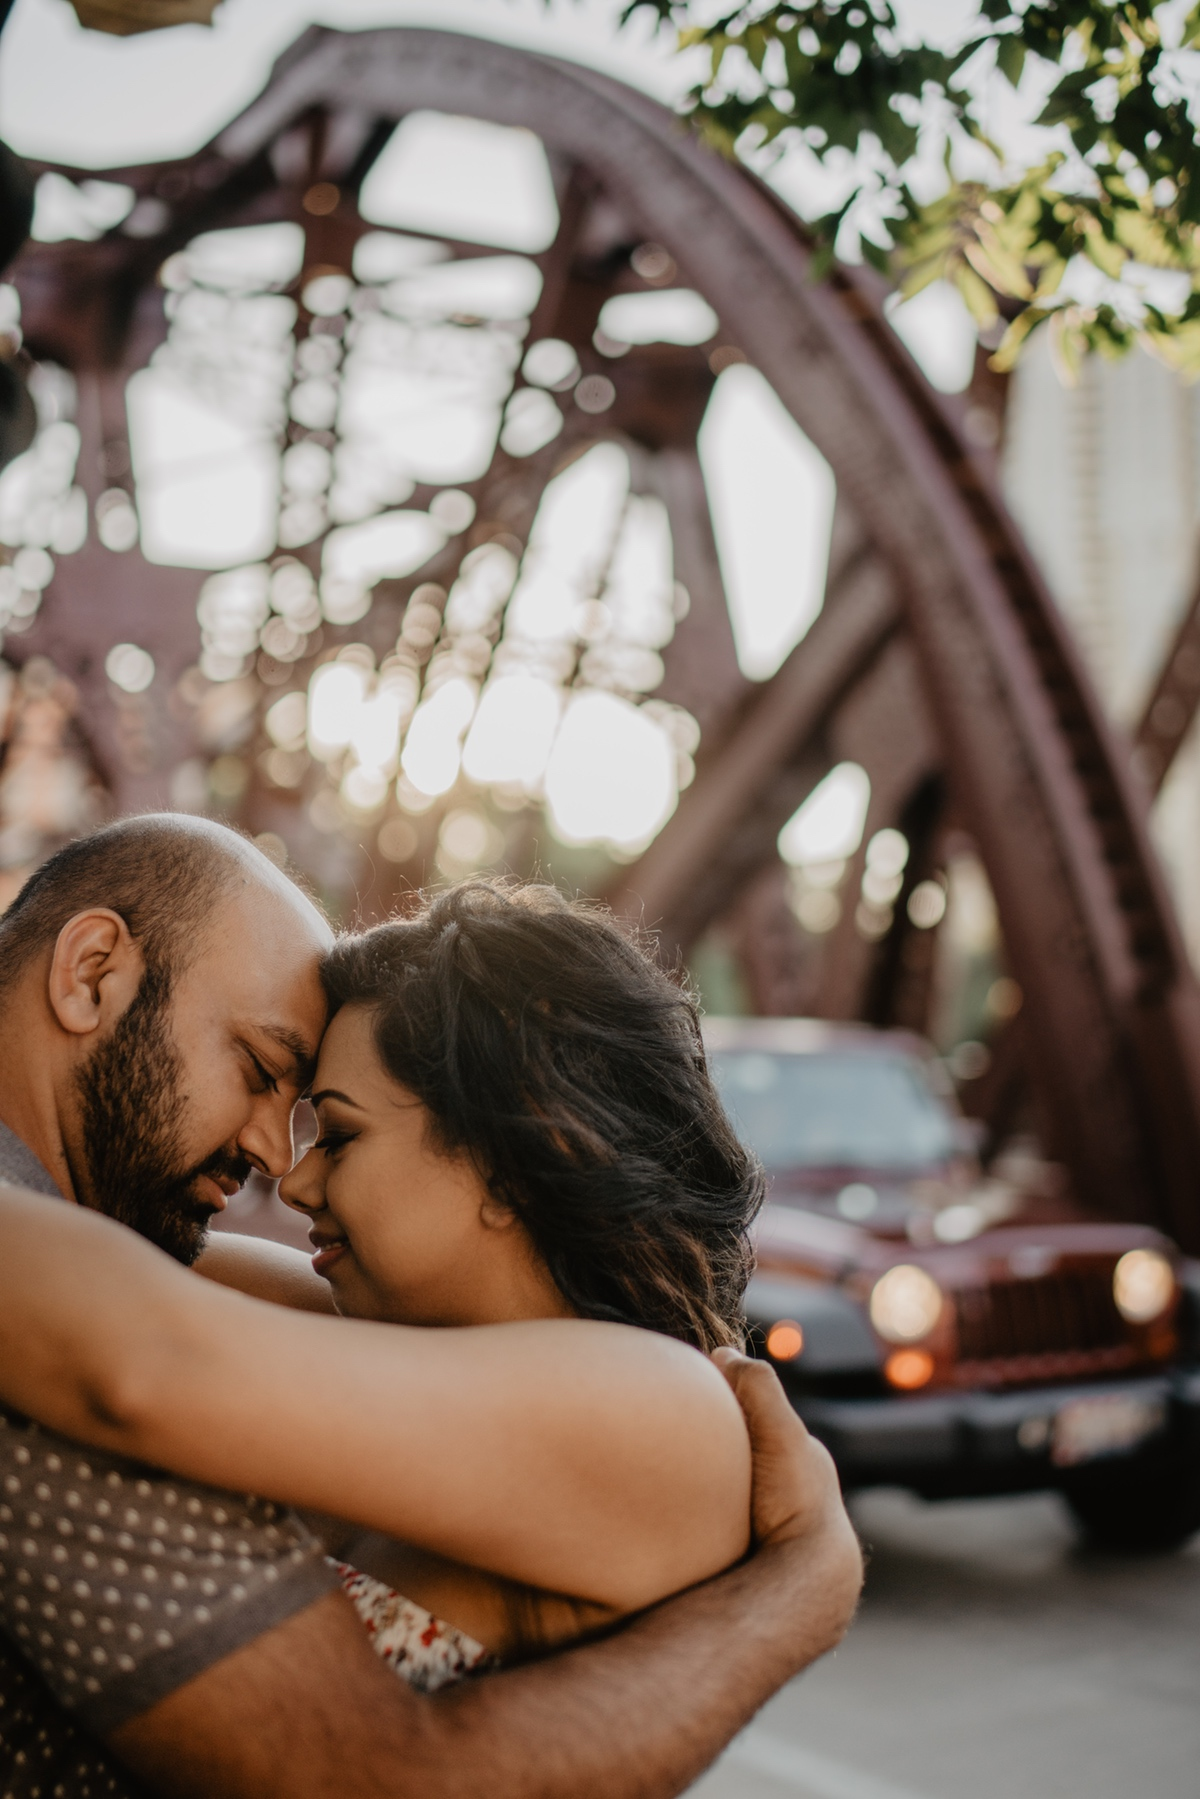 Le Cape Weddings - Engagement Session in Chicago - Brinjal-17.jpg